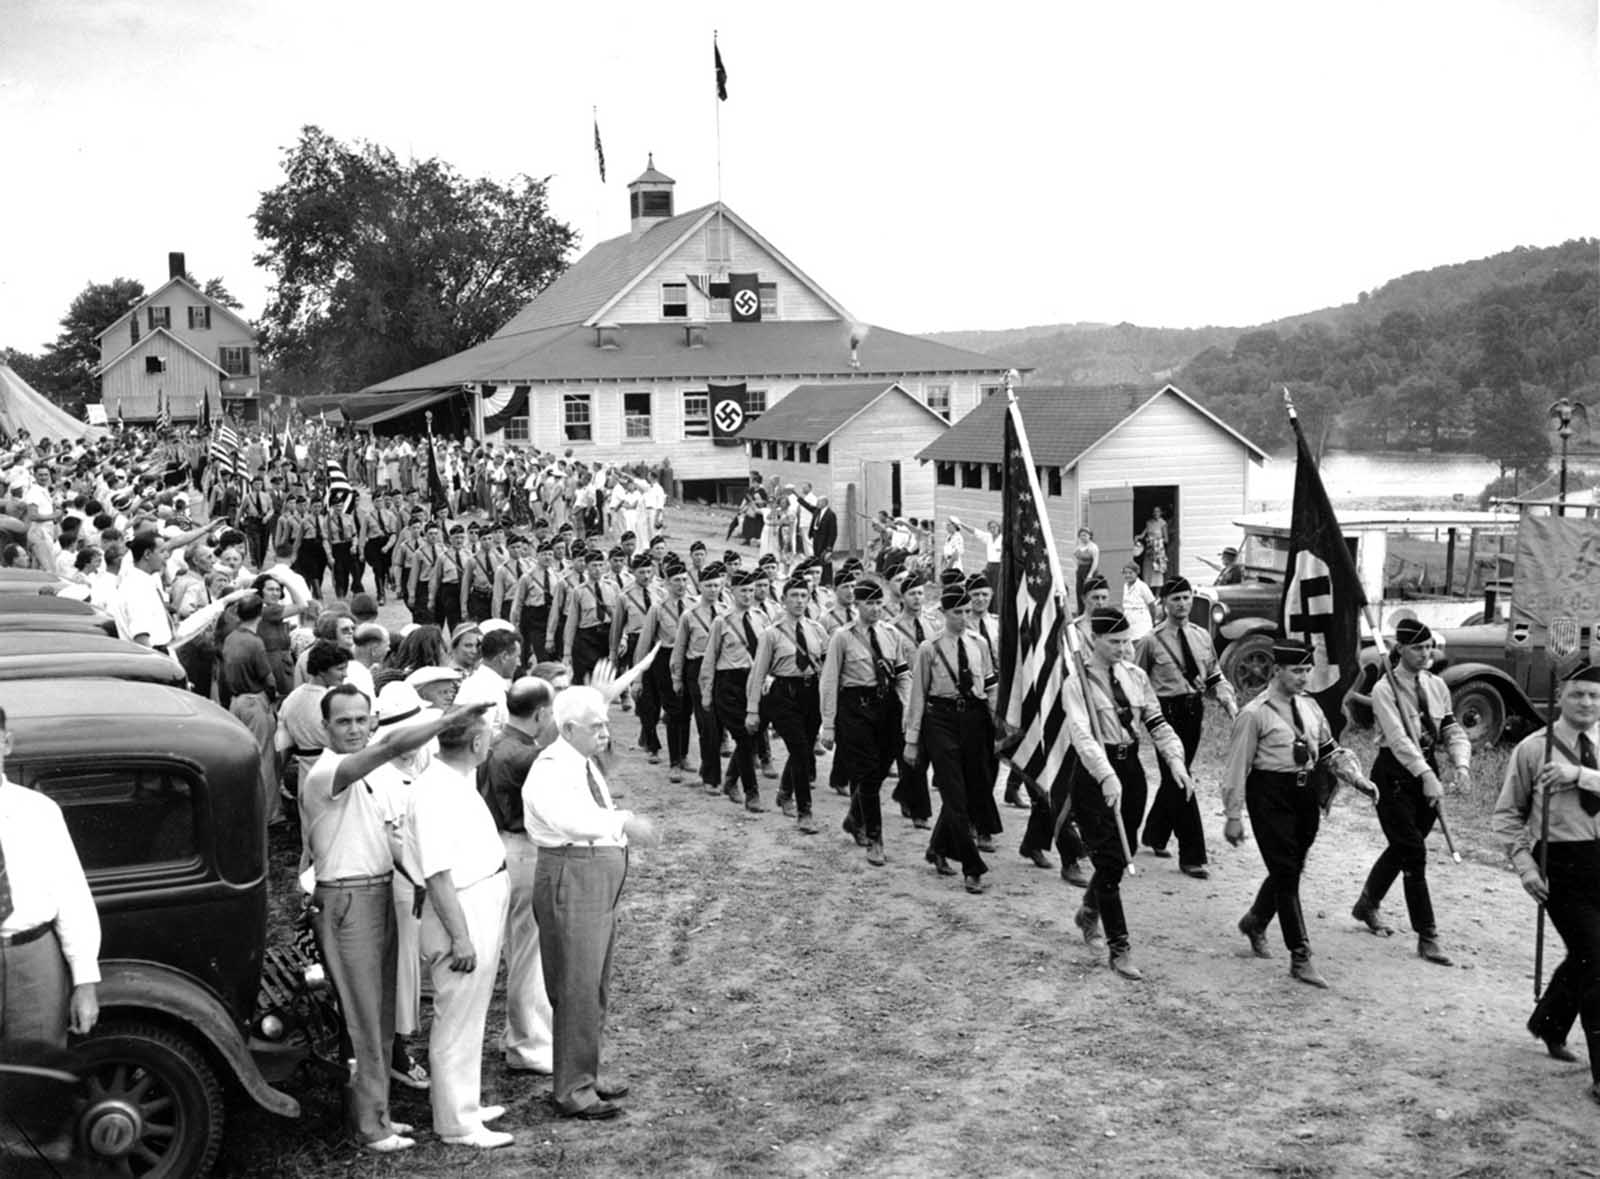 Nearly 1,000 uniformed men wearing swastika arm bands and carrying Nazi banners parade past a reviewing stand in New Jersey on July 18, 1937. The New Jersey division of the German-American Bund opened its 100-acre Camp Nordland at Sussex Hills. Dr. Salvatore Caridi of Union City, spokesman for a group of Italian-American Fascists attending as guests, addressed the bund members as